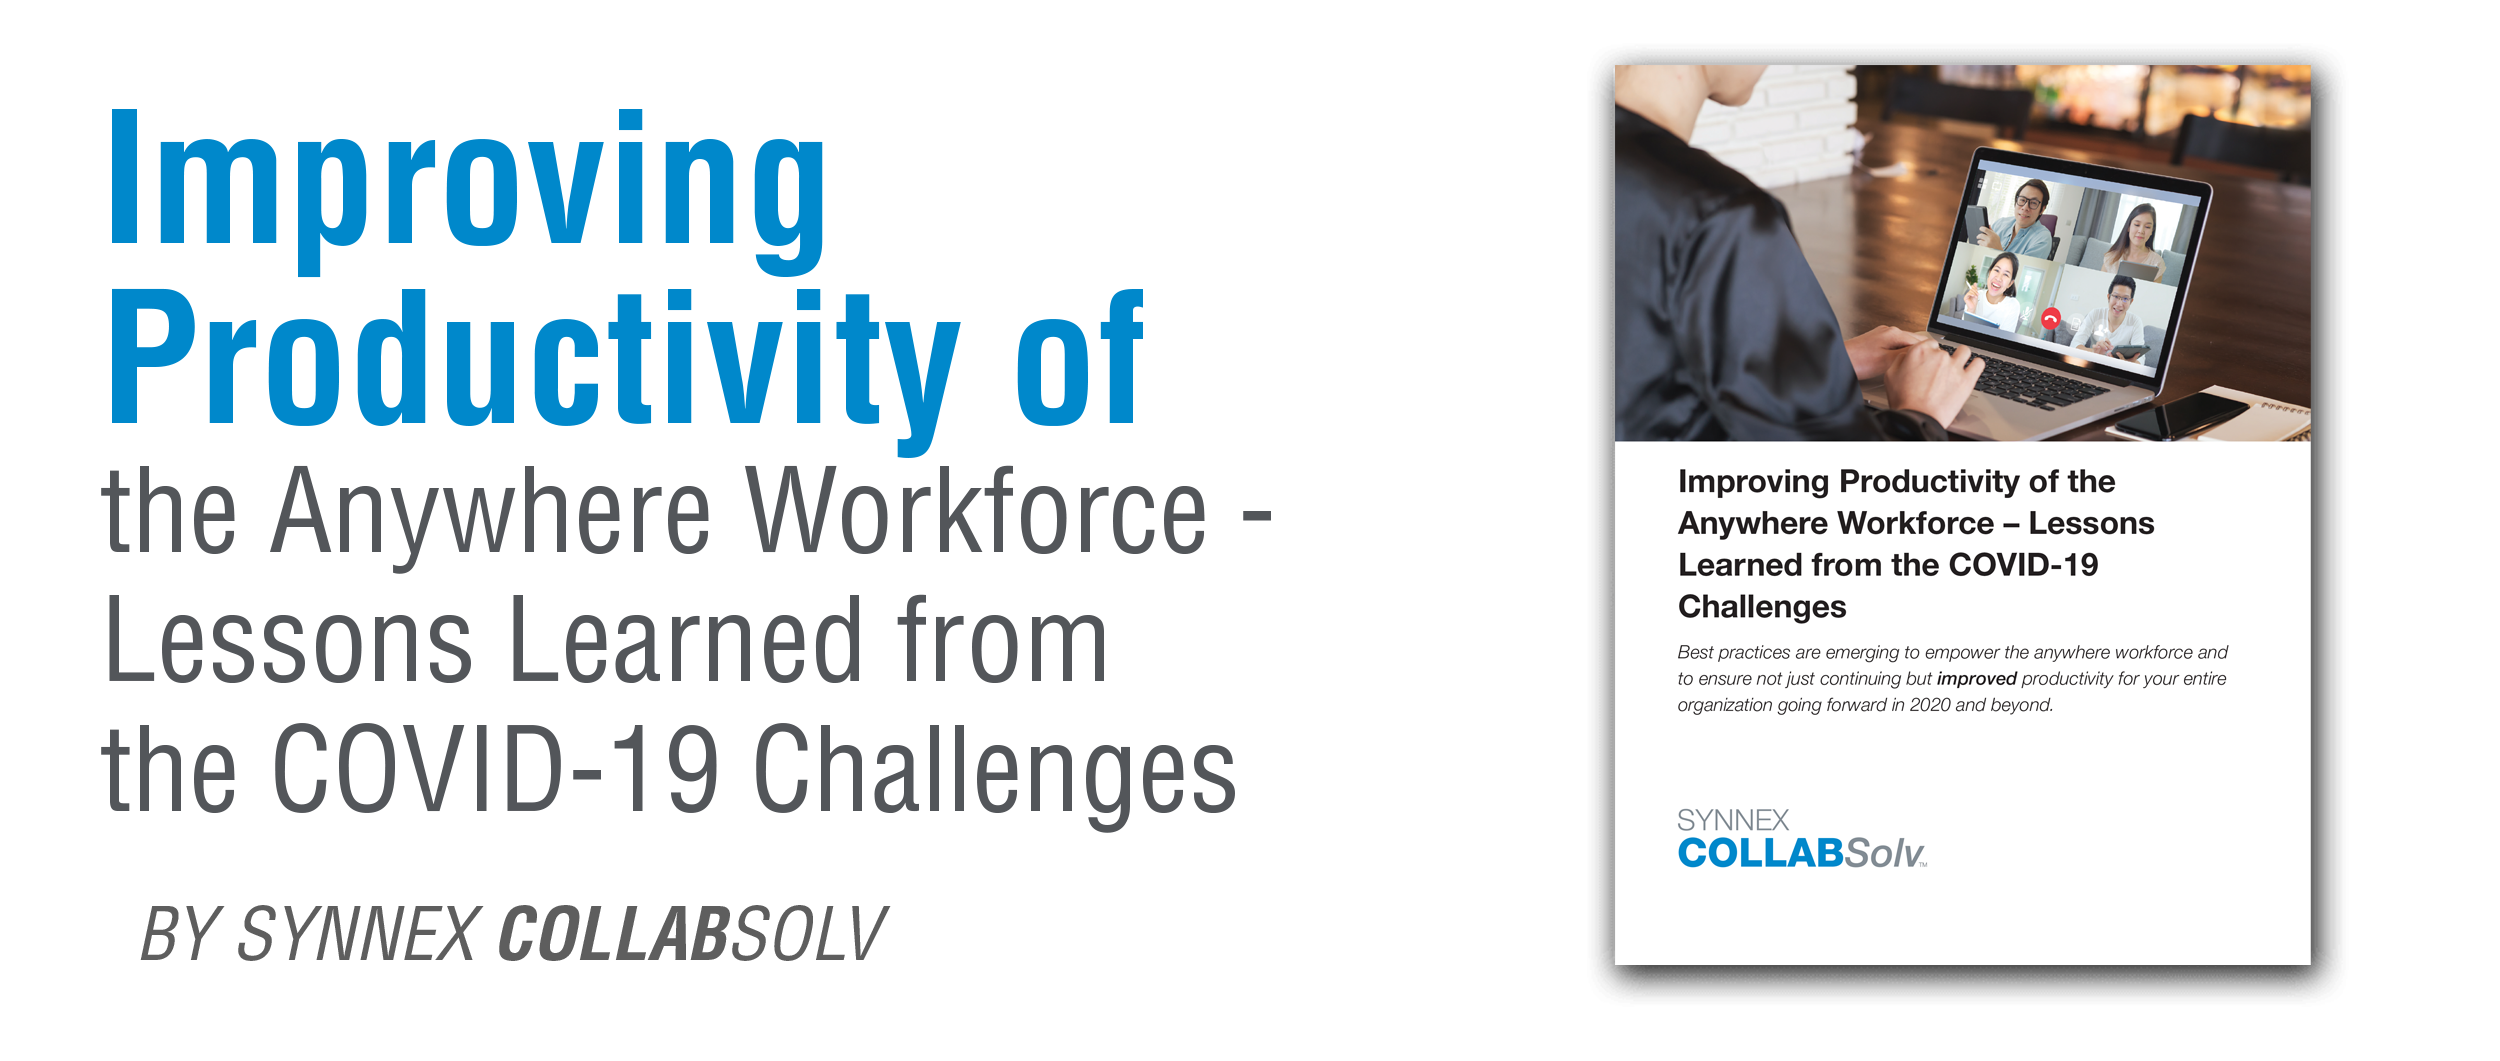 Improving Productivity of the Anywhere Workforce - Lessons Learned from the COVID-19 Challenges